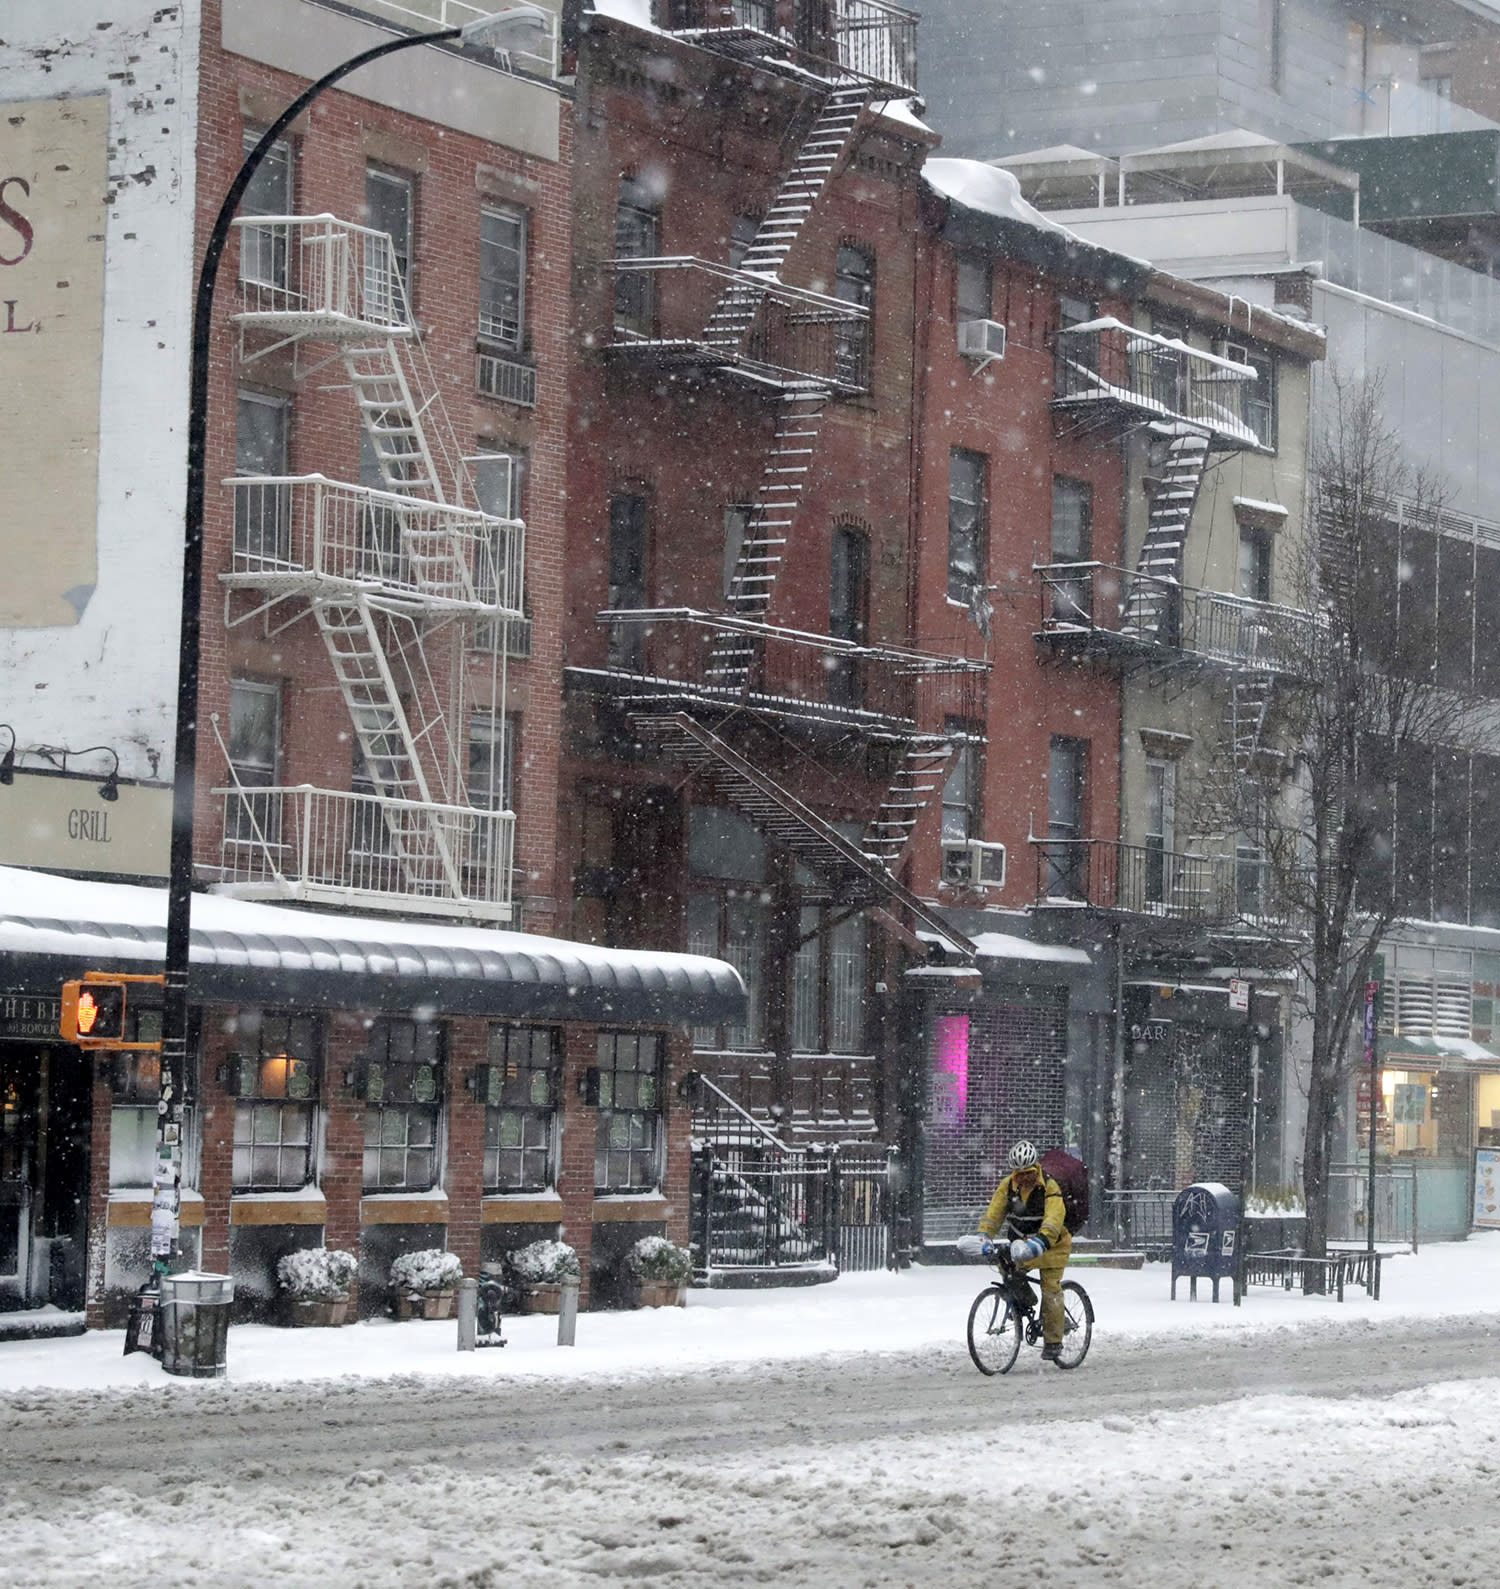 <p>A delivery man rides on his bike through the snow on the Bowery in New York, March 14, 2017. While New York and Boston had been issued a blizzard warning, that has been downgraded to a winter storm as the storm's track shifted resulting in a shift to rain for both cities and smaller forecast snowfall totals. (Jason Szenes/EPA) </p>